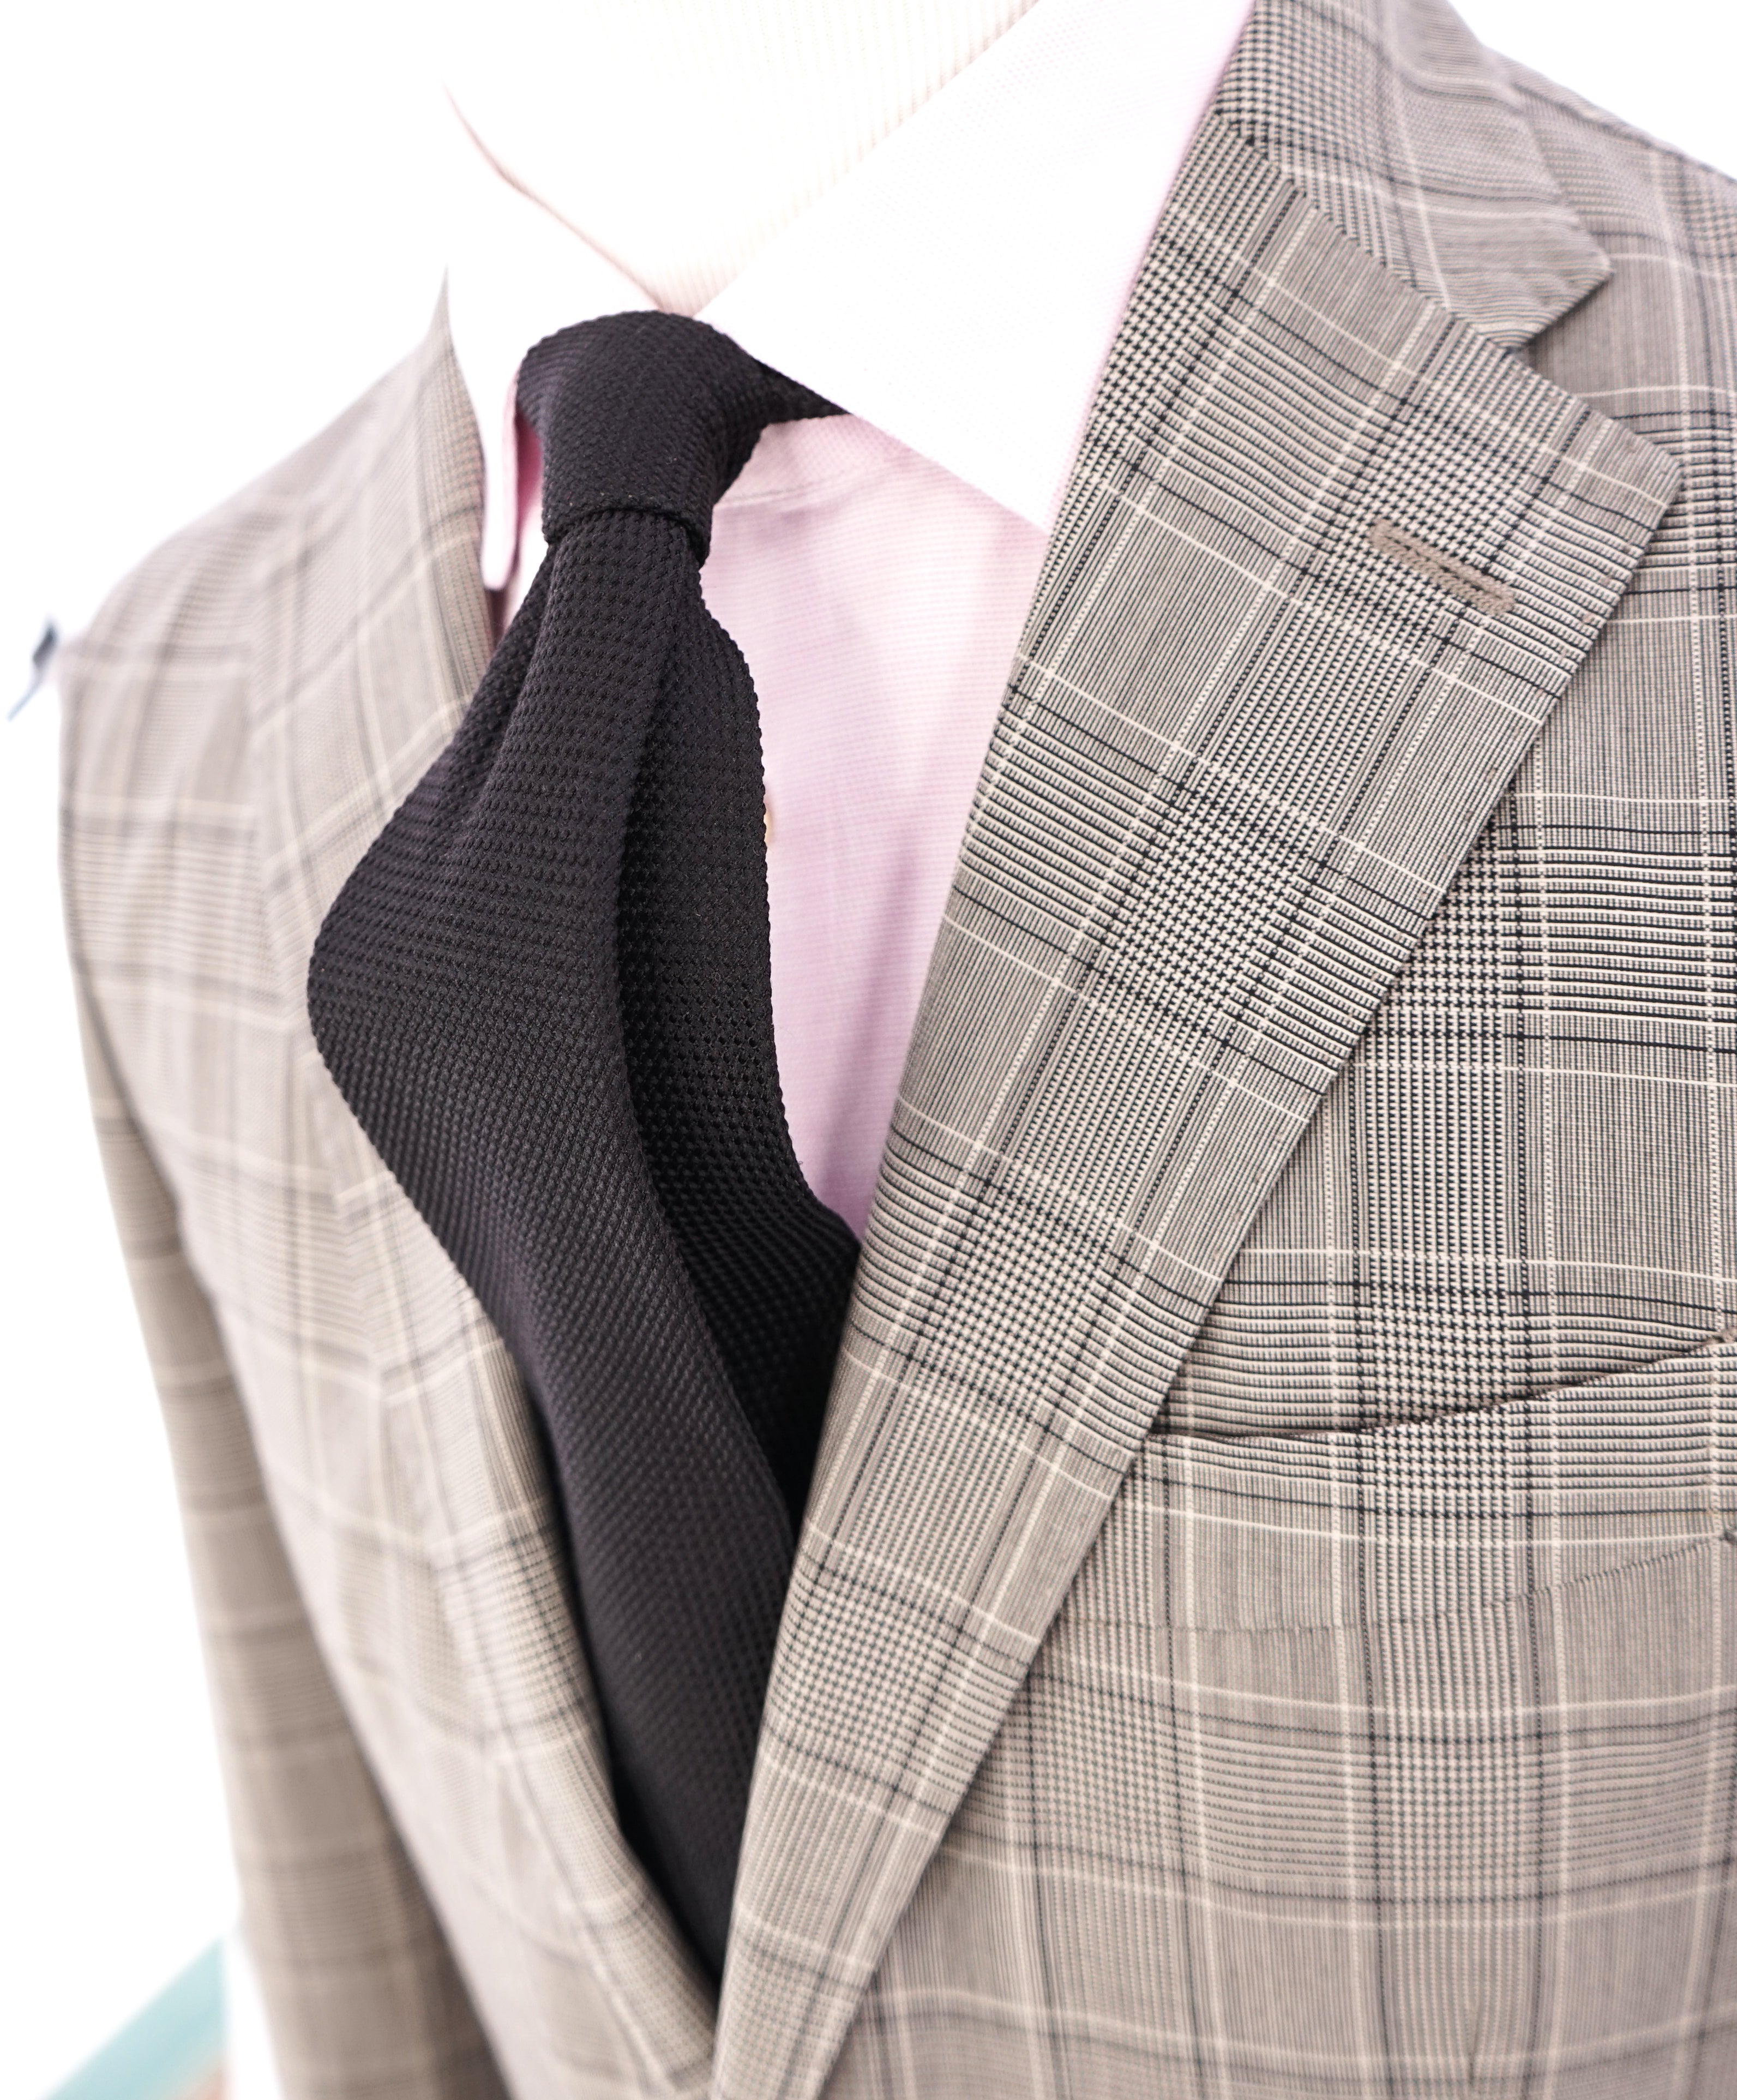 BOGLIOLI -Milano Semi-Lined Deconstructed Wool Gray/Beige Plaid Check Suit - 40R